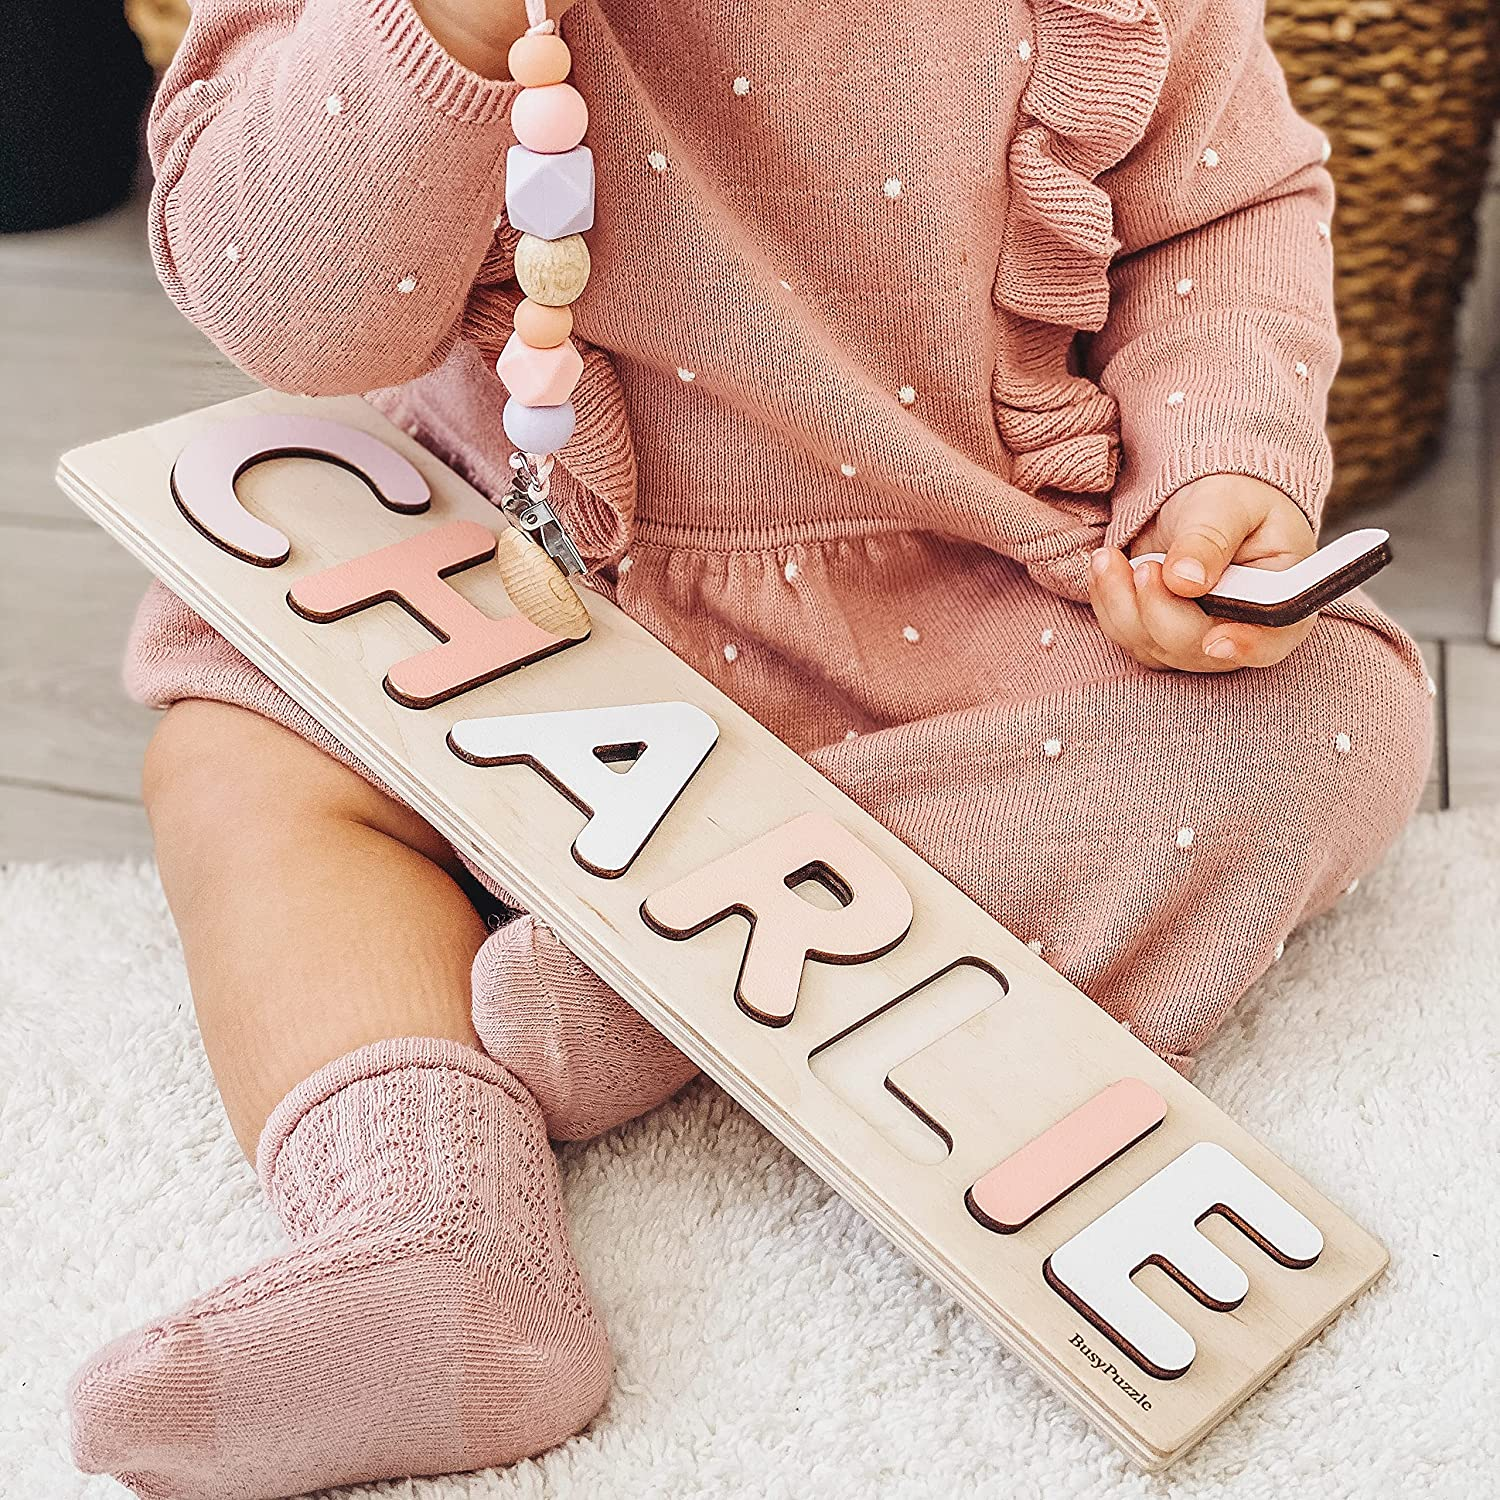 Name Quality inspection Puzzle With Pegs Personalized Toy Wooden Super-cheap